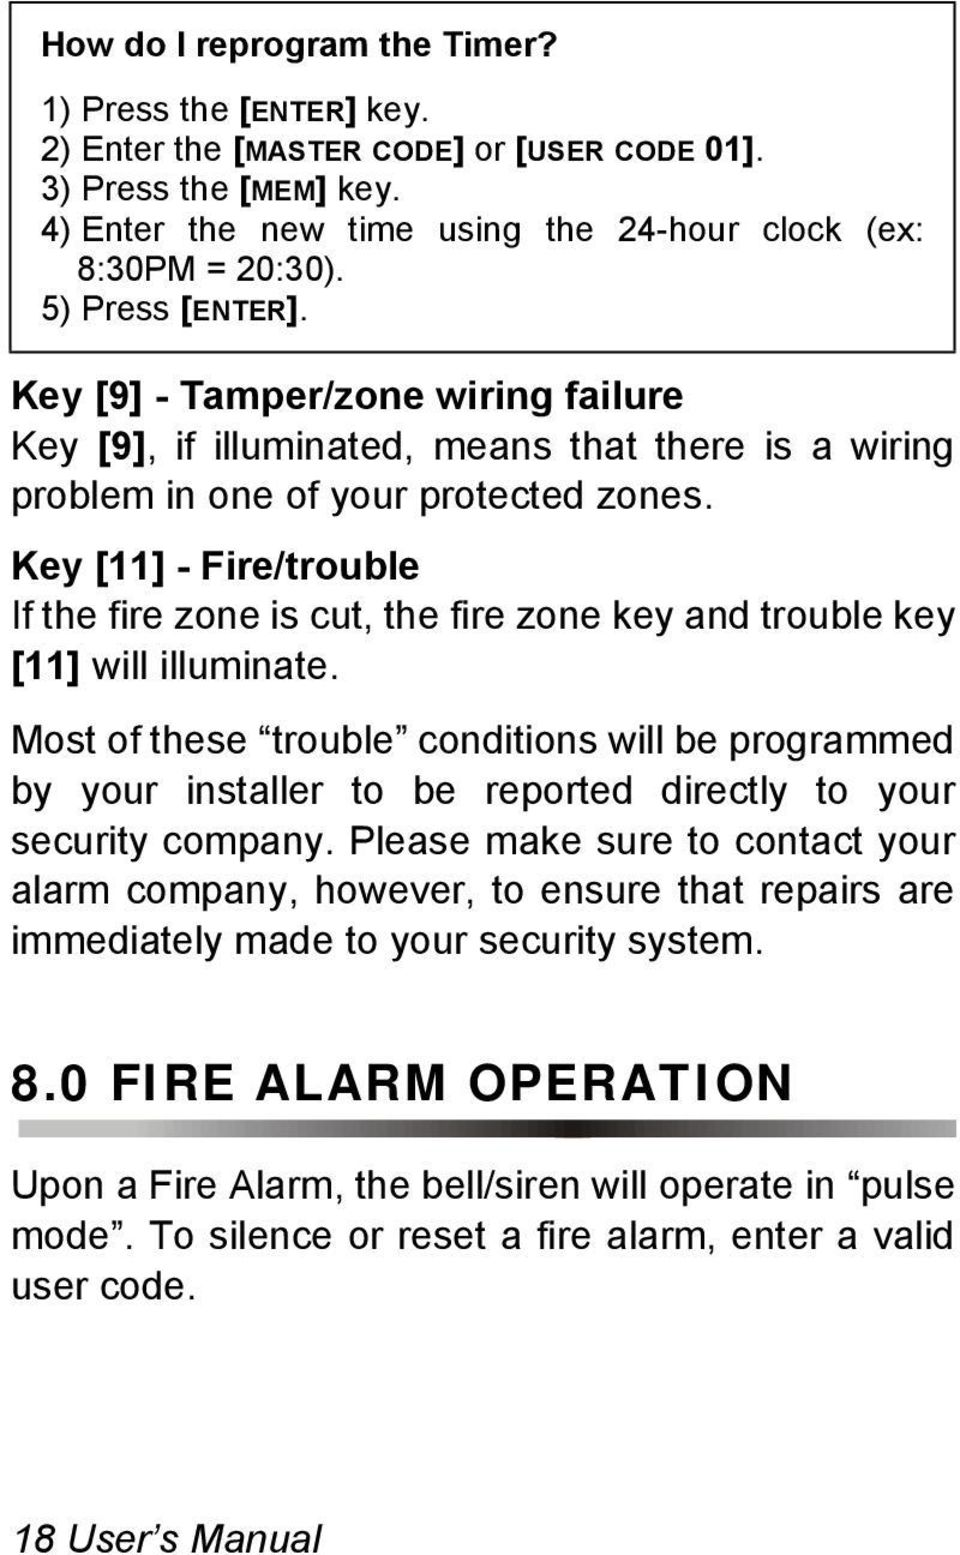 Key [11] - Fire/trouble If the fire zone is cut, the fire zone key and trouble key [11] will illuminate.